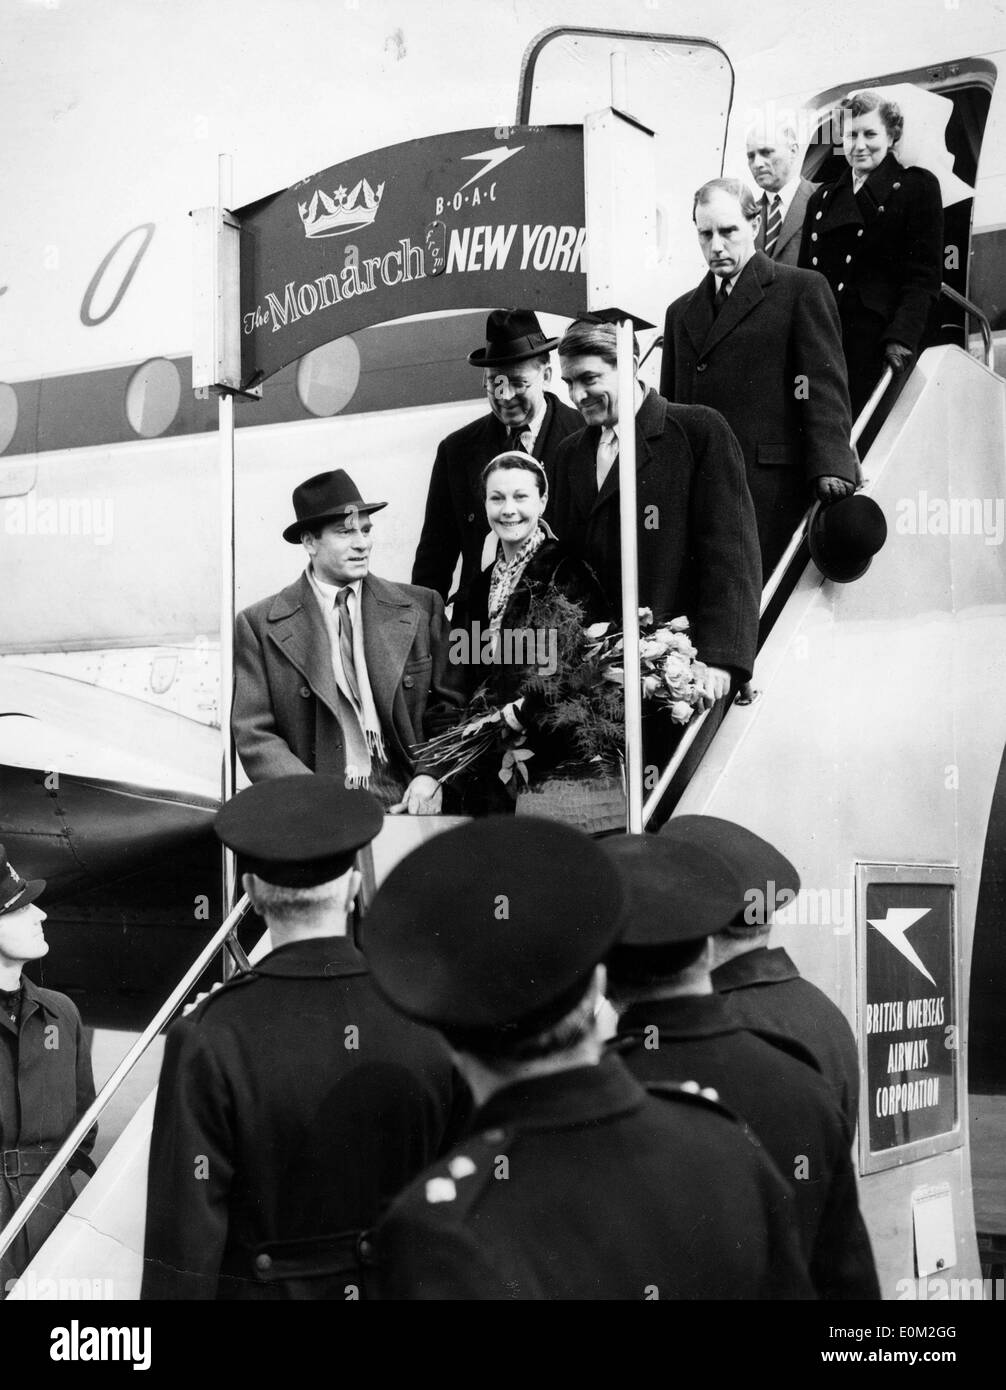 Actor Laurence Olivier and wife Vivien Leigh arrive in London - Stock Image